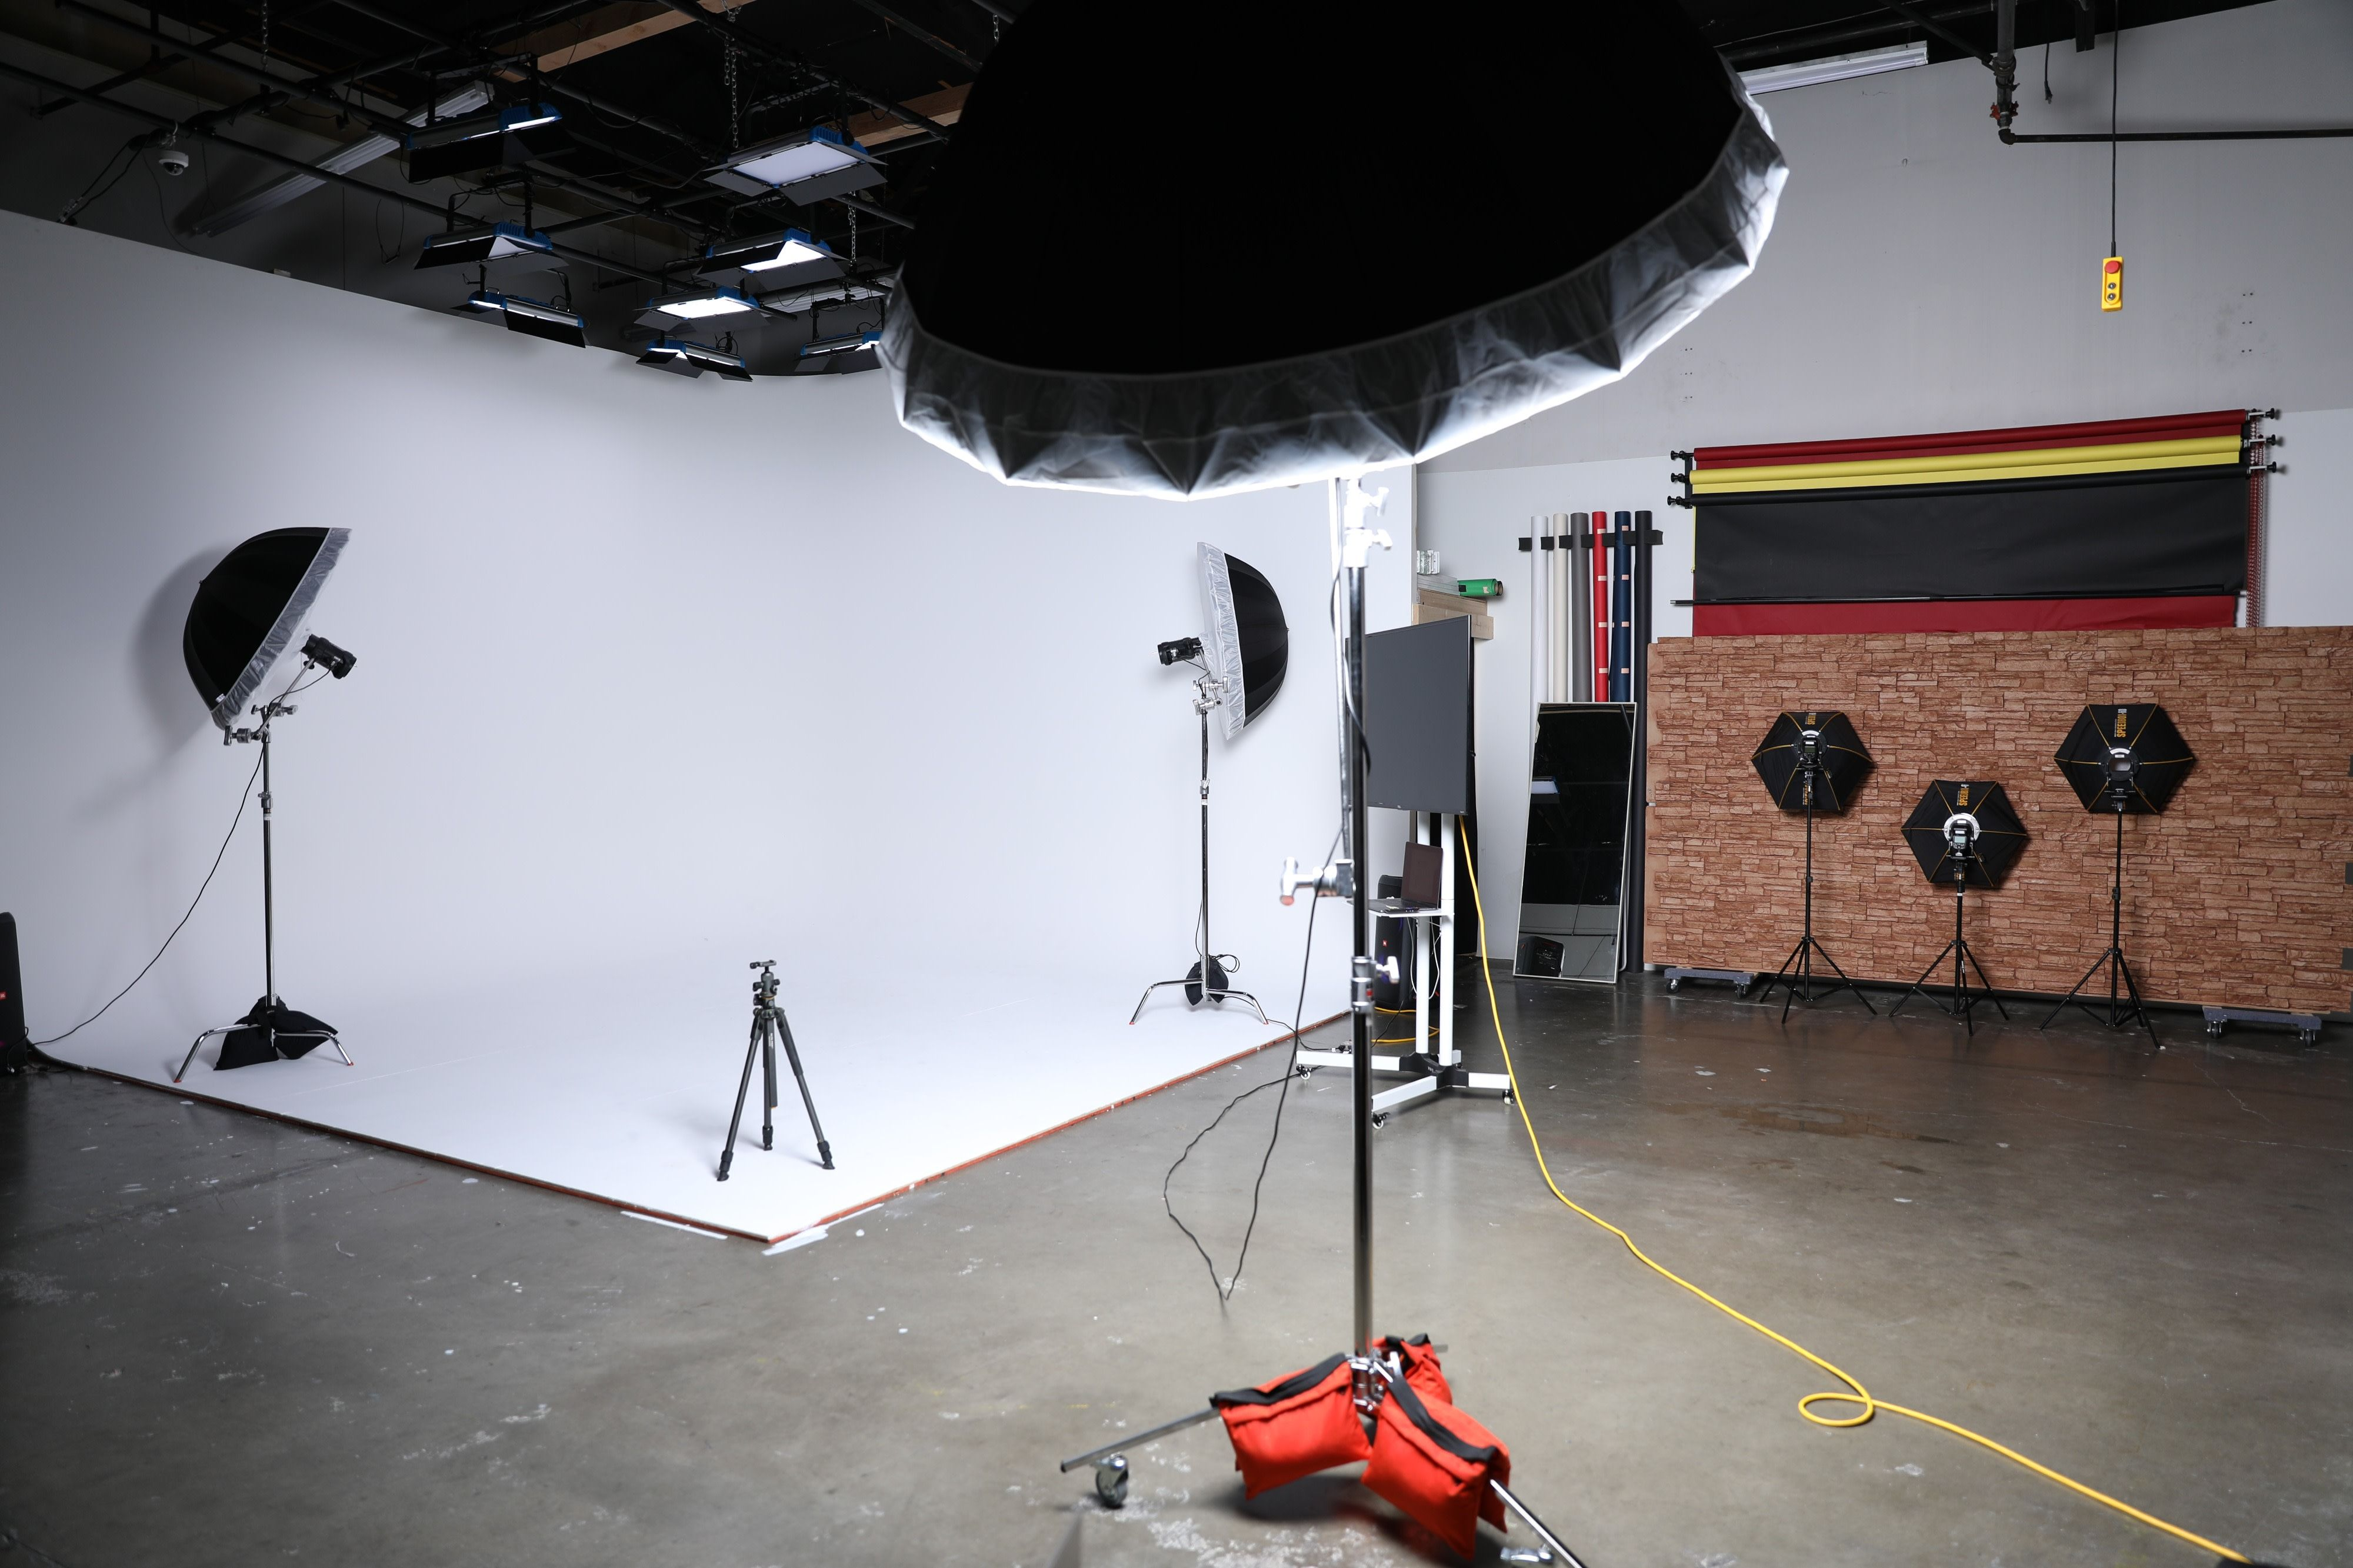 Tacoma Video Photo Studio With Cyclorama Wall And Great Lighting Fife Wa Production Peerspace In 2020 Photo Studio Led Panel Light Brick Wall Background